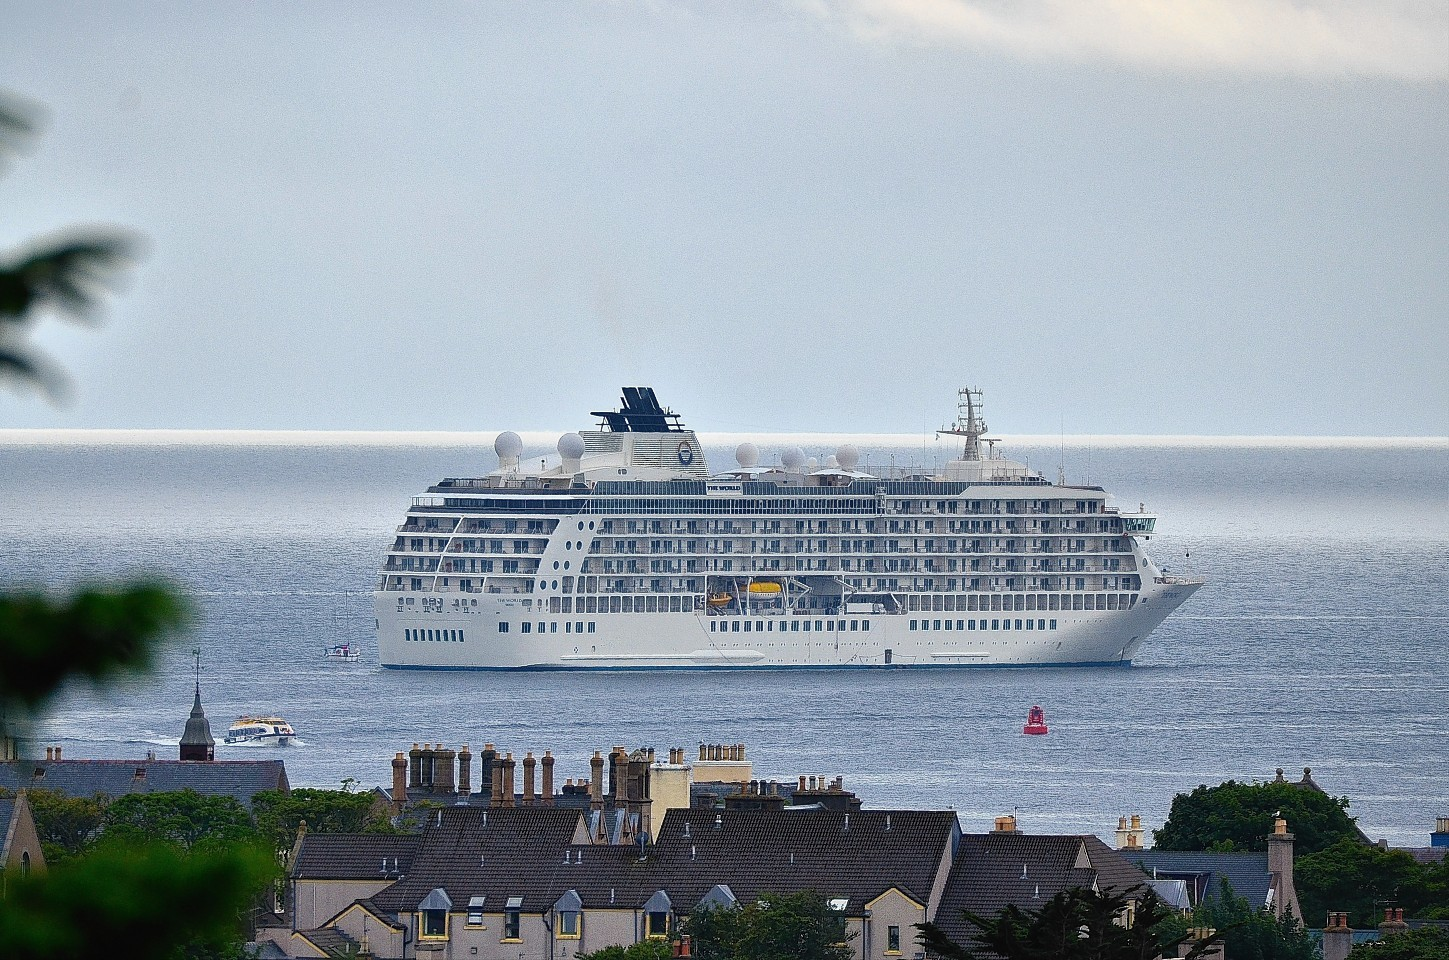 70 ships are booked to visit Stornoway in 2016